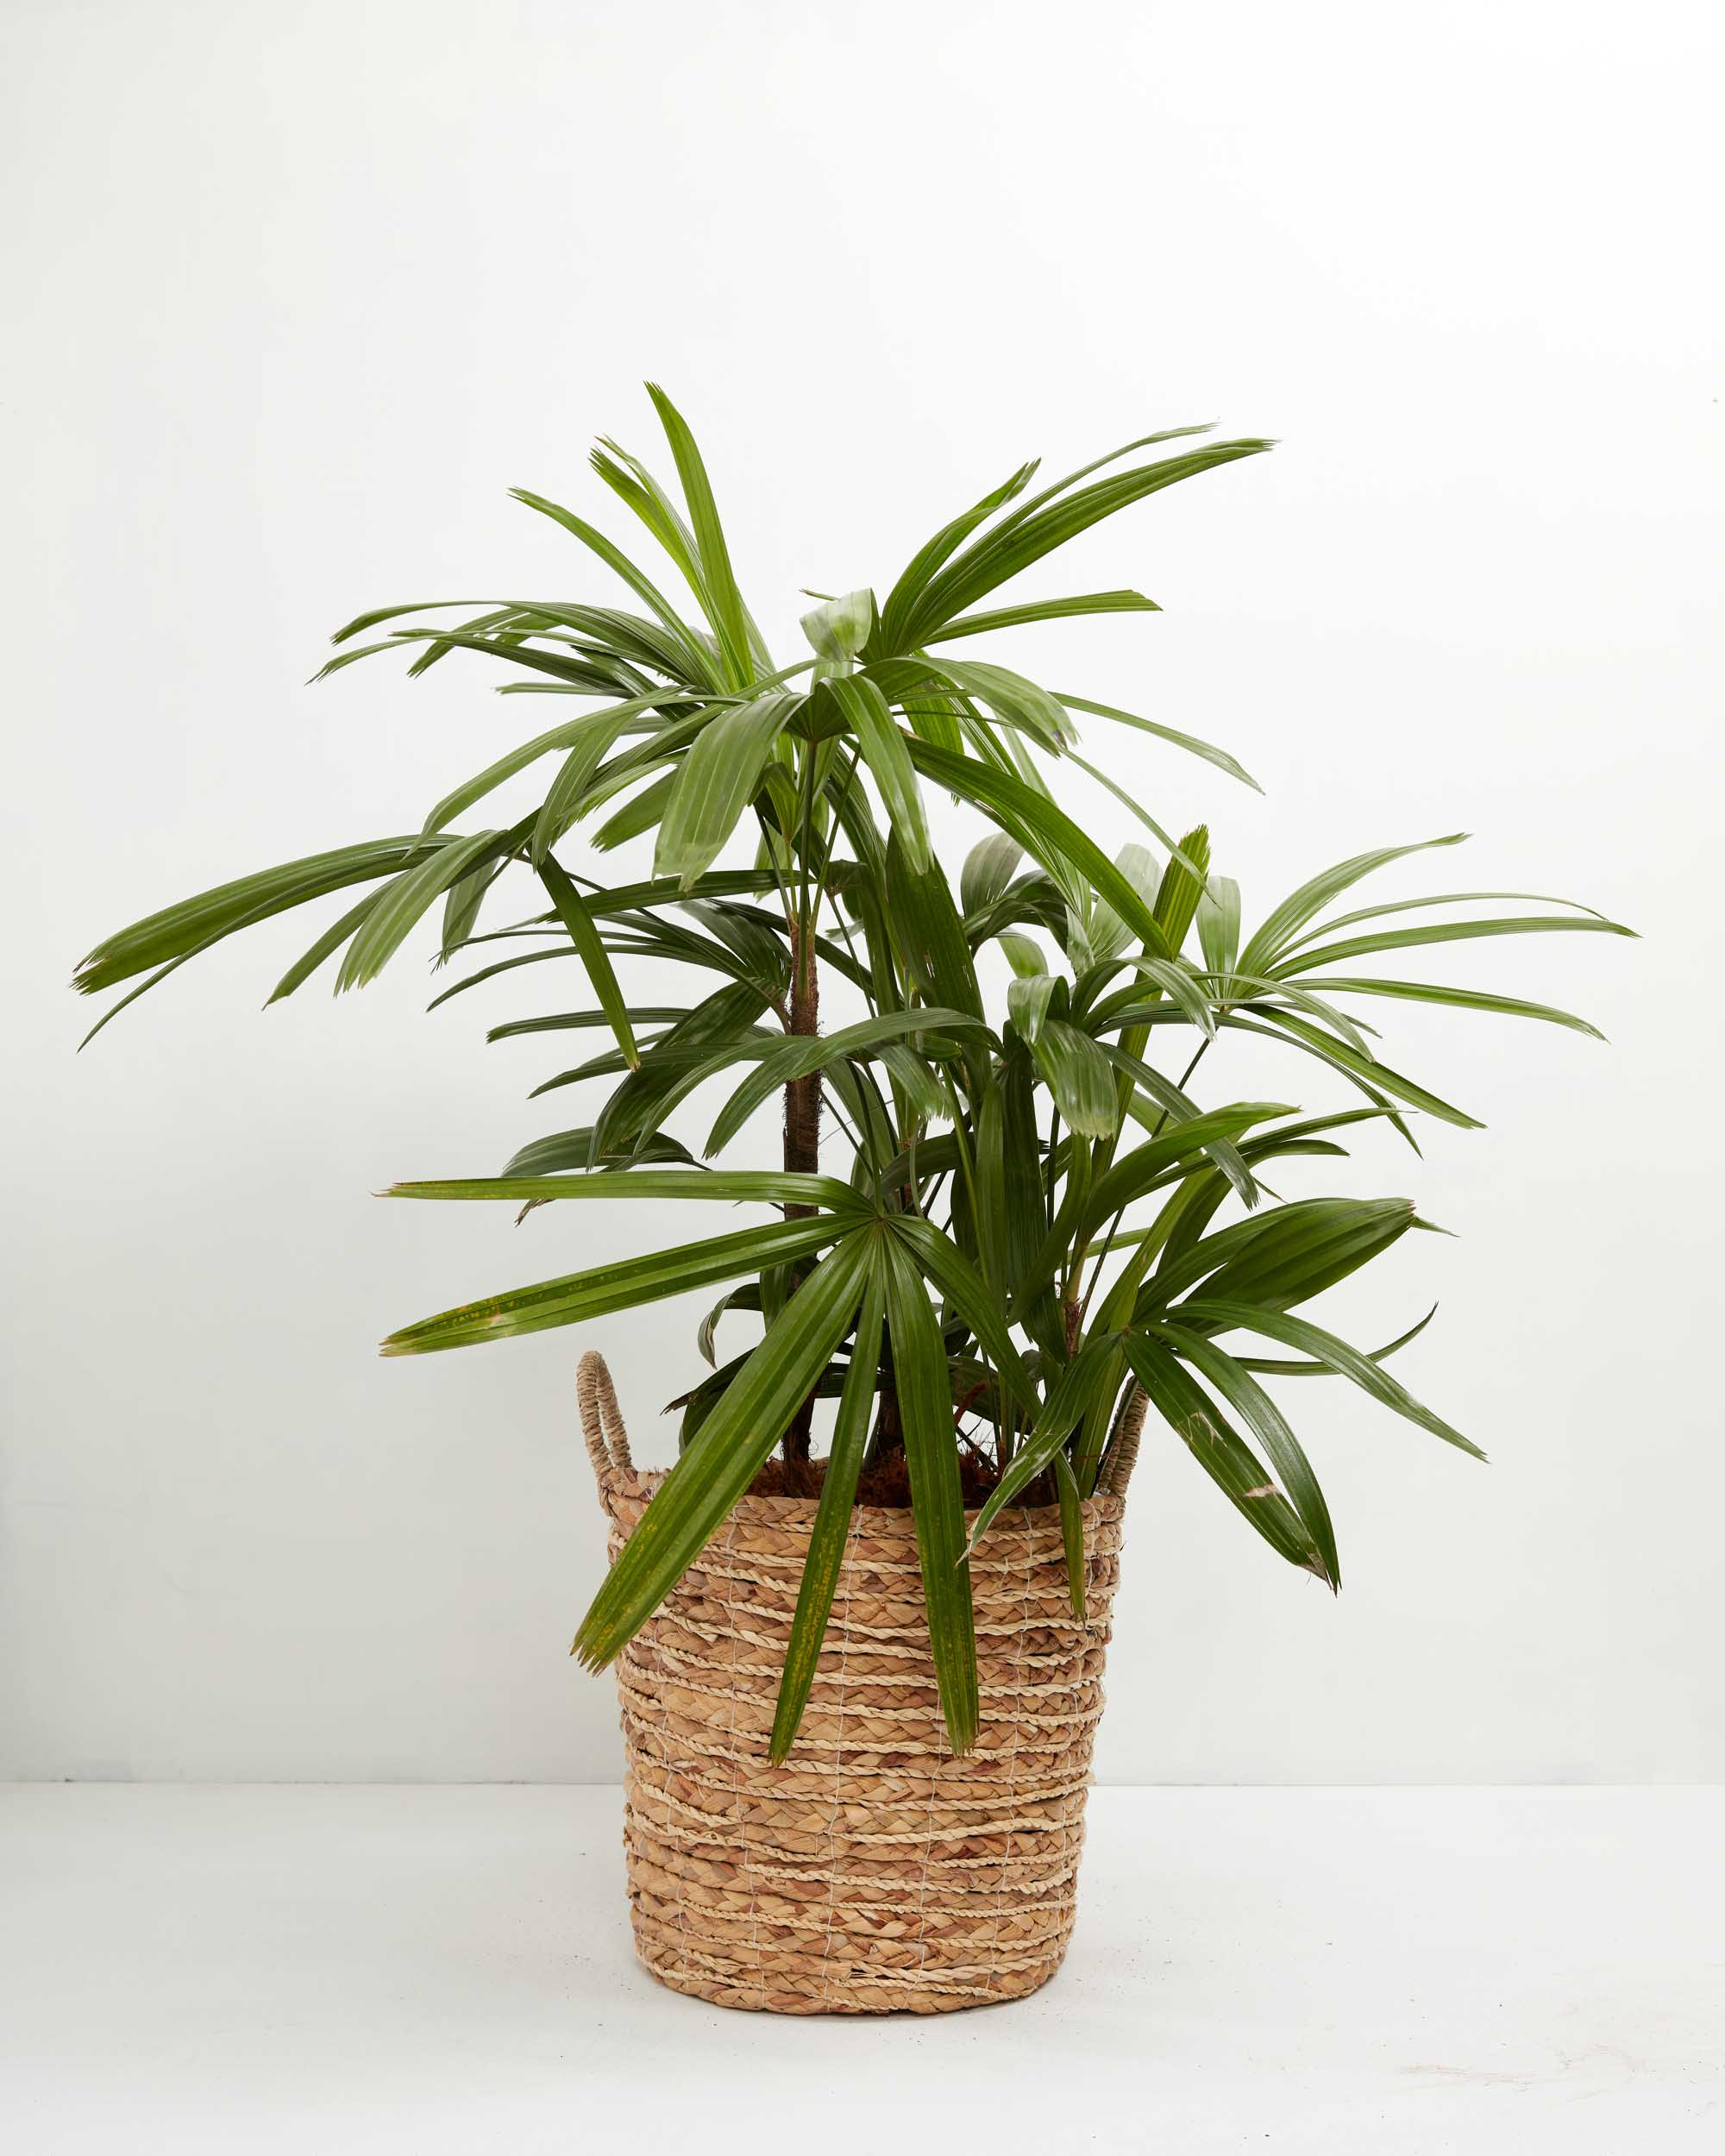 https://www.livelyroot.com/products/lady-palm?variant=33254802161746